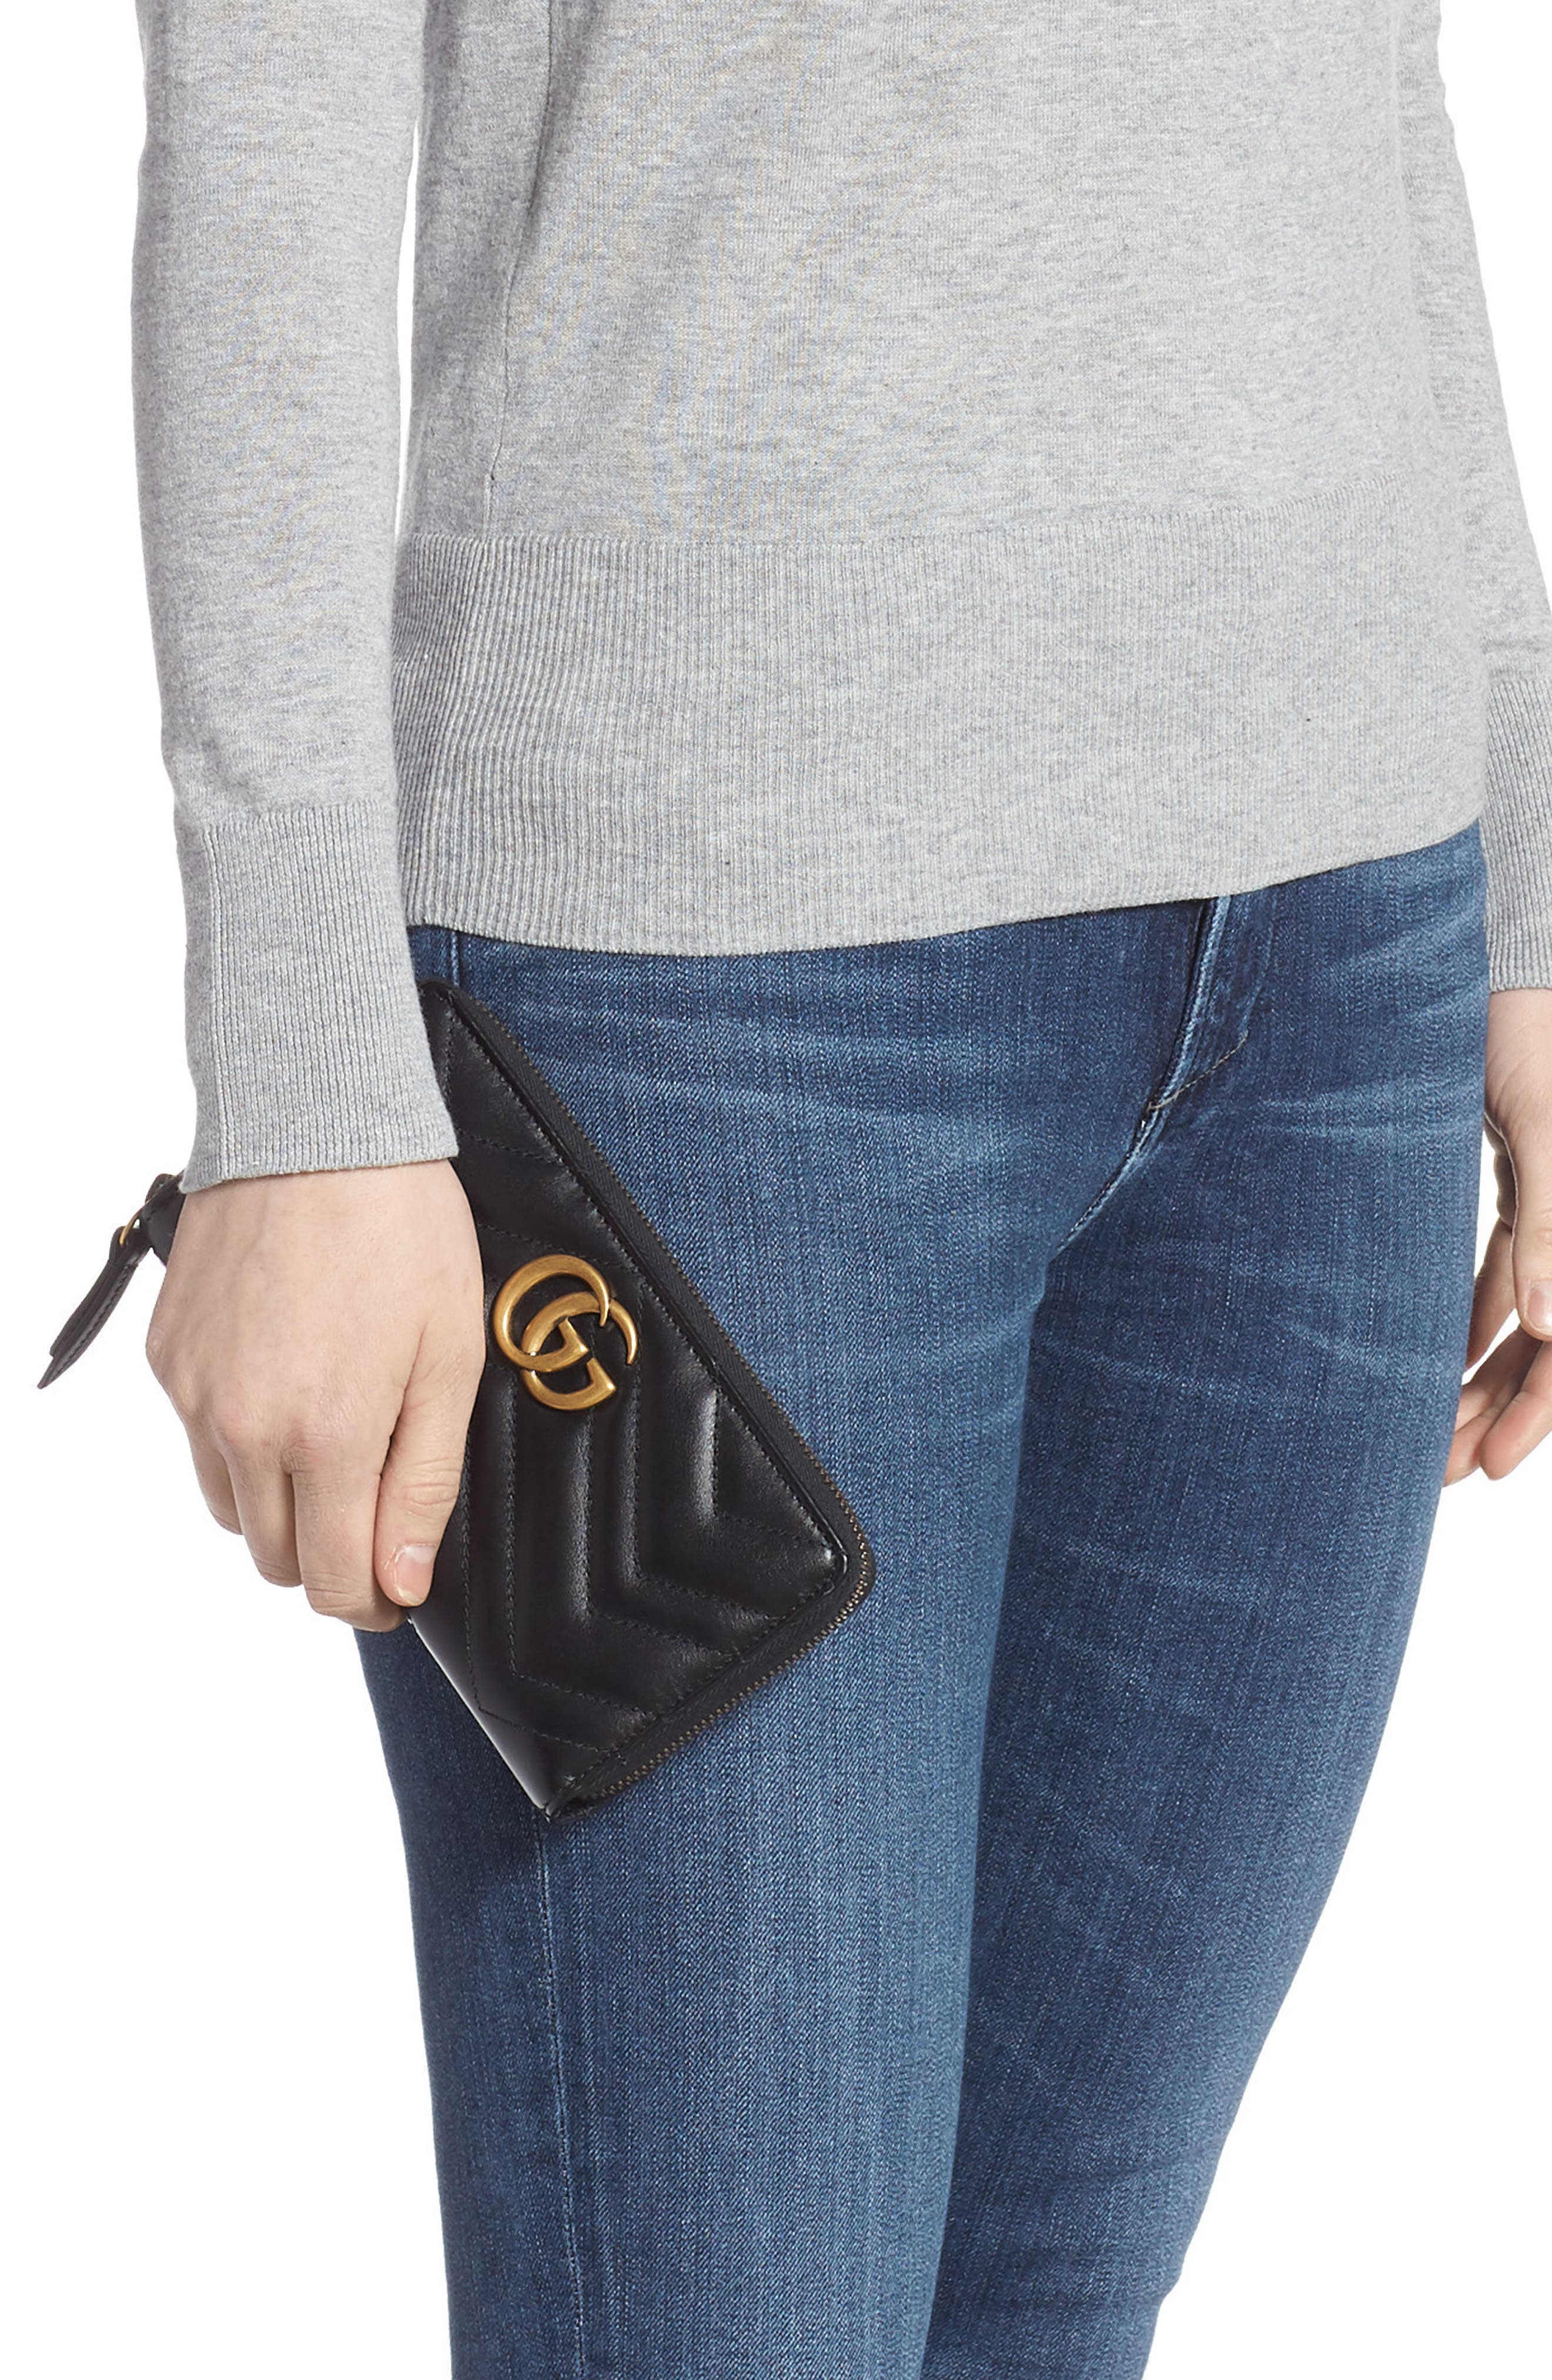 GUCCI,                             GG Marmont 2.0 Zip Around Wallet,                             Alternate thumbnail 2, color,                             NERO